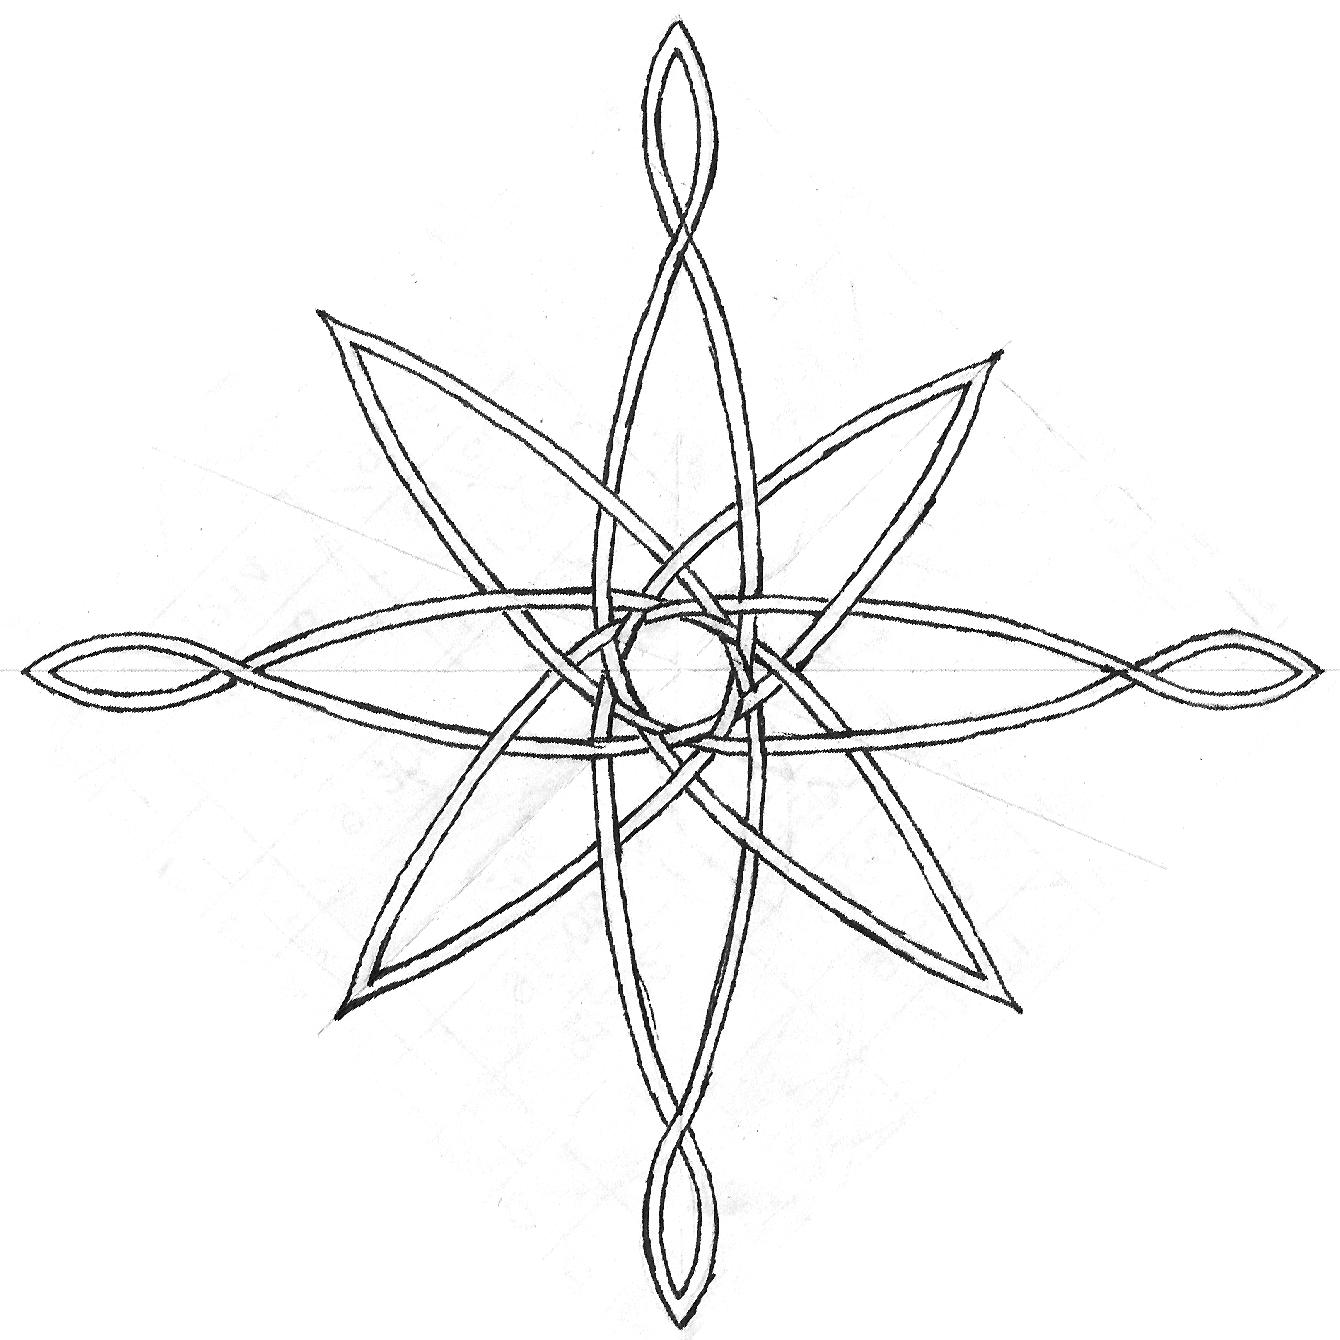 Compass Tattoo Line Drawing : Compass rose sketch by midnightlynx on deviantart